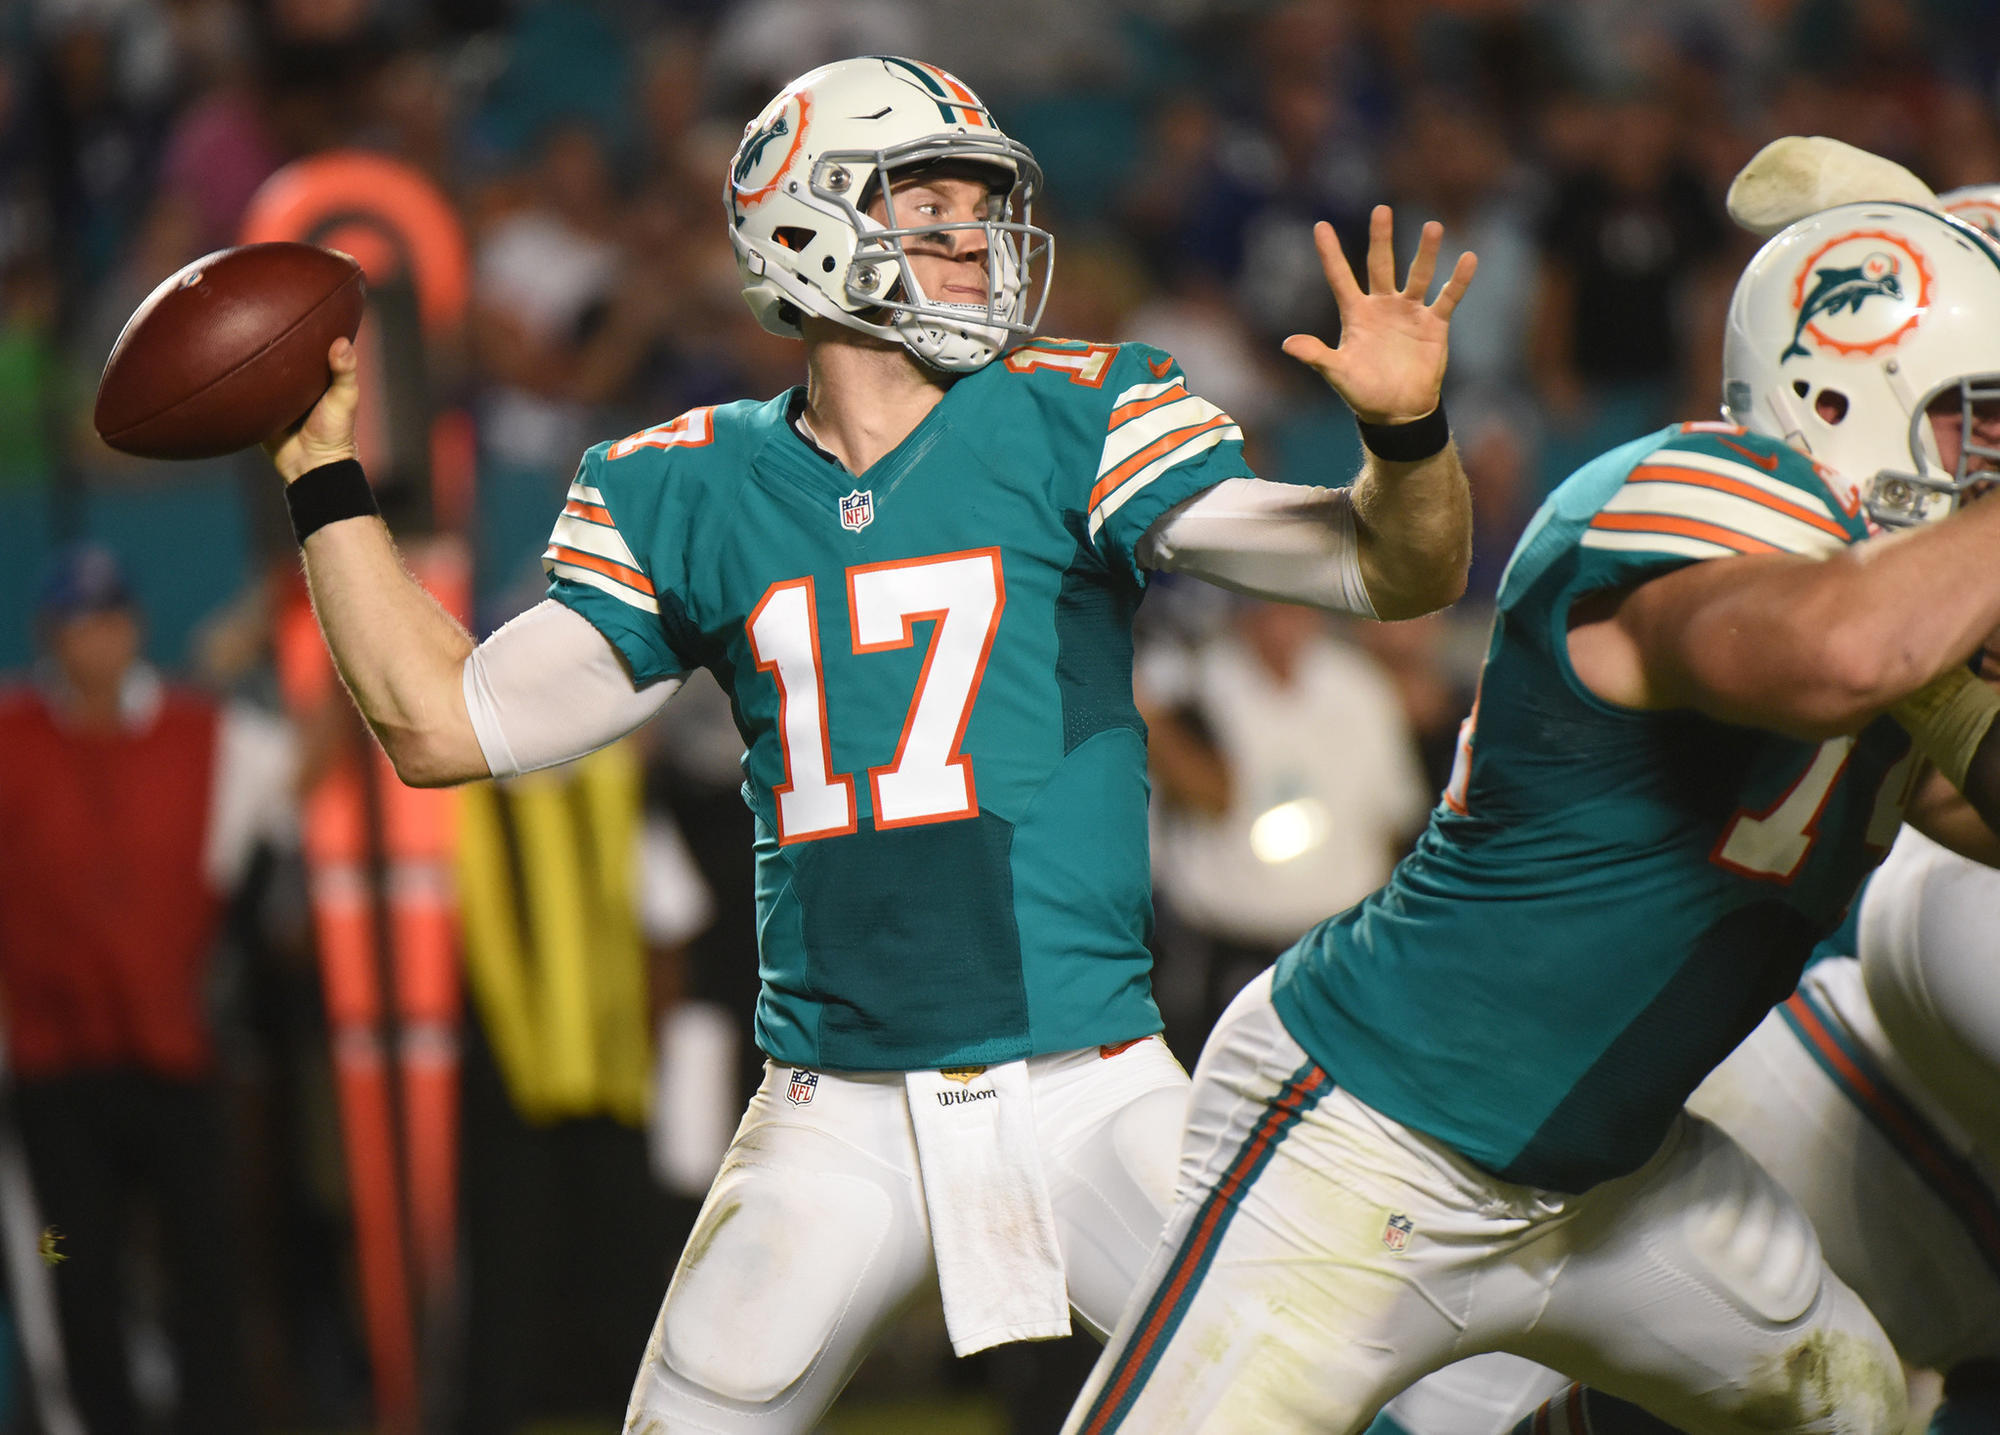 Fl-sp-dolphins-blog-tannehill-draft-20180130